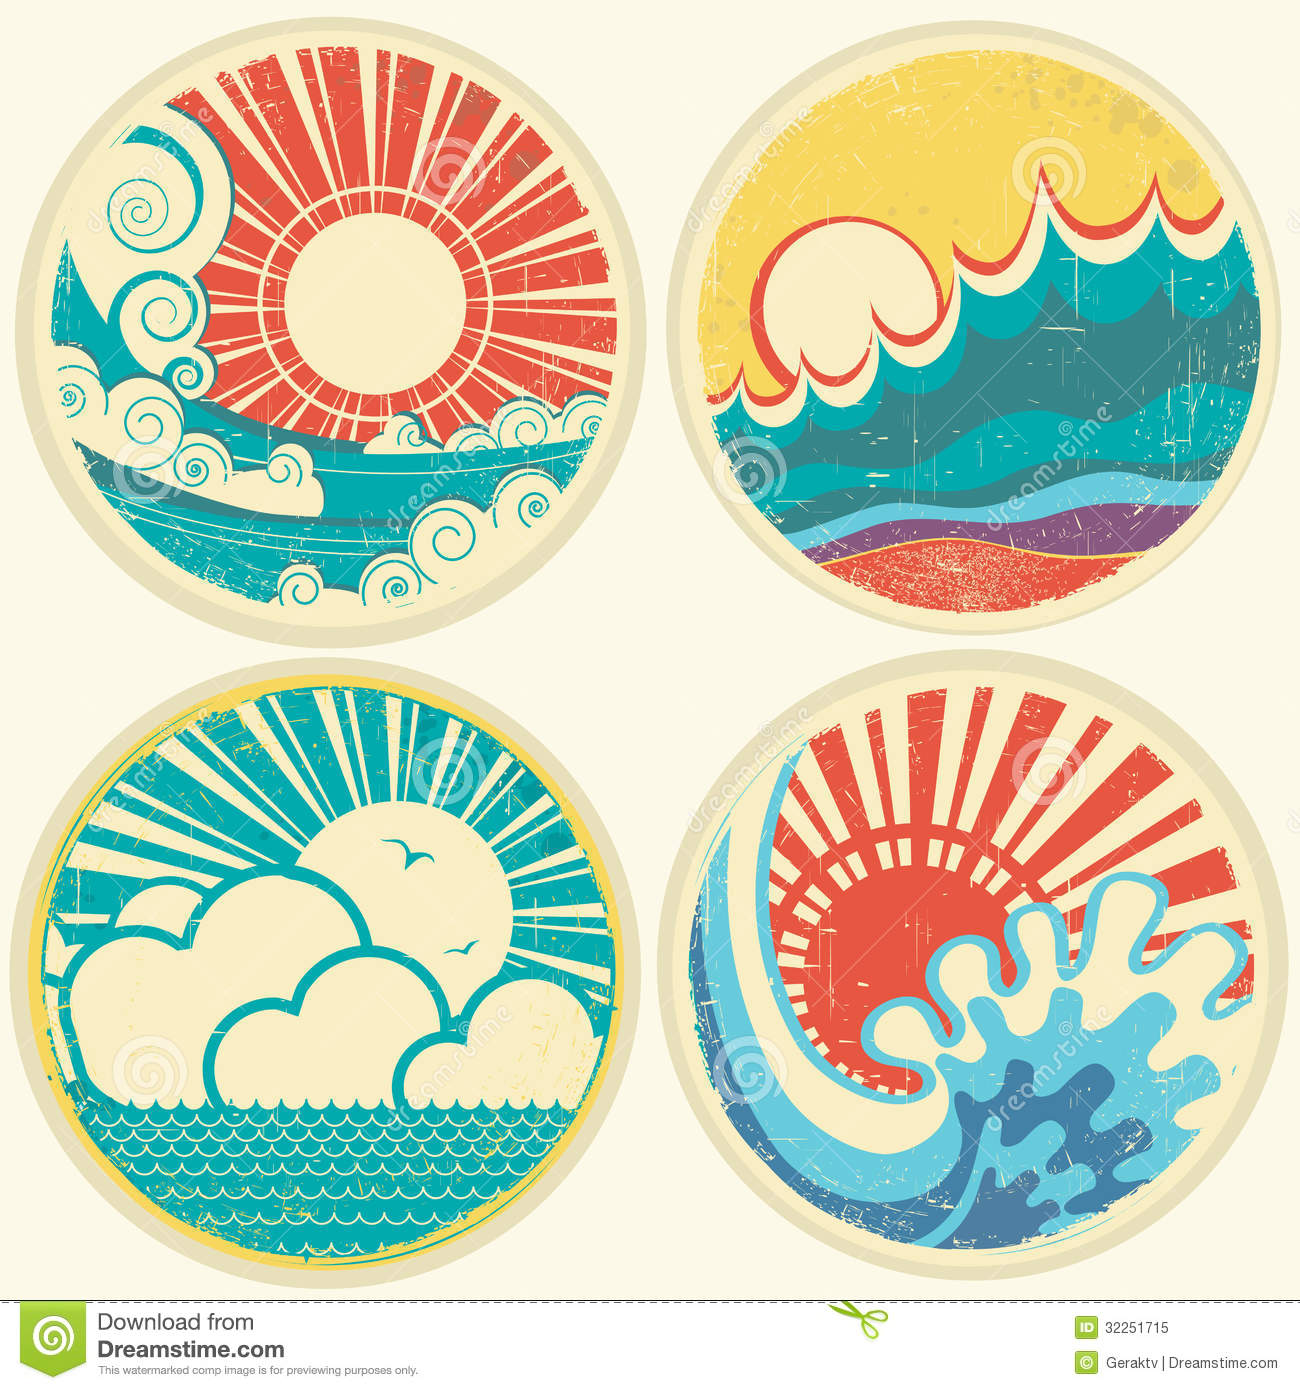 Classic Retro Illustration: Vintage Sun And Sea Waves. Vector Icons Of Illust Royalty